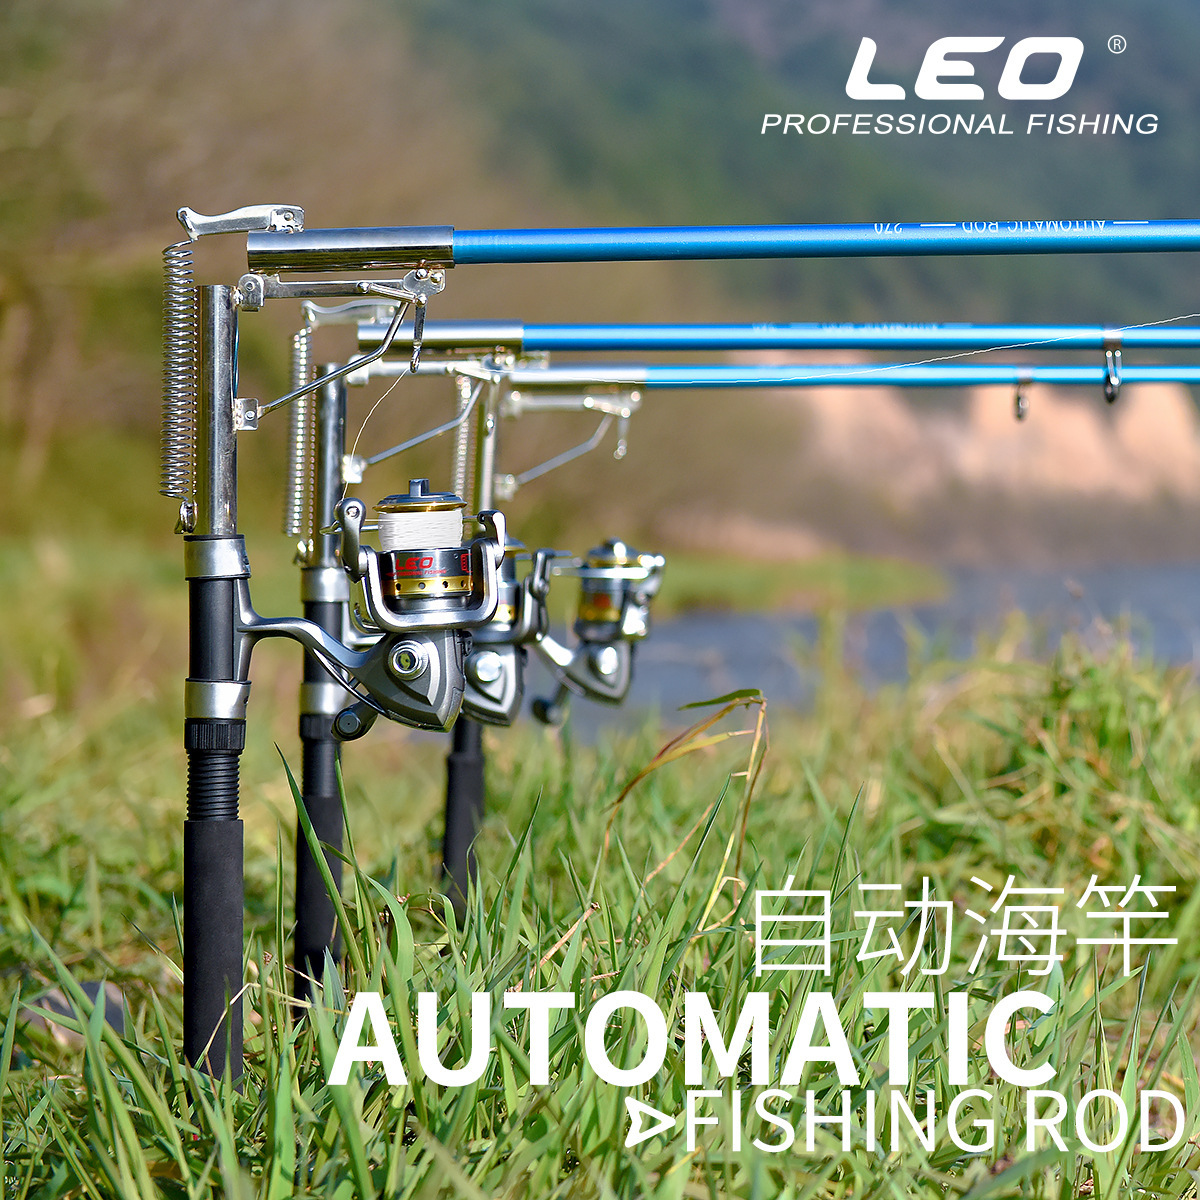 LEO automatic sea fishing rod 2 levels gear High sensitivity Self-lifting throwing fishing rod fishing gear FRP Free Shipping